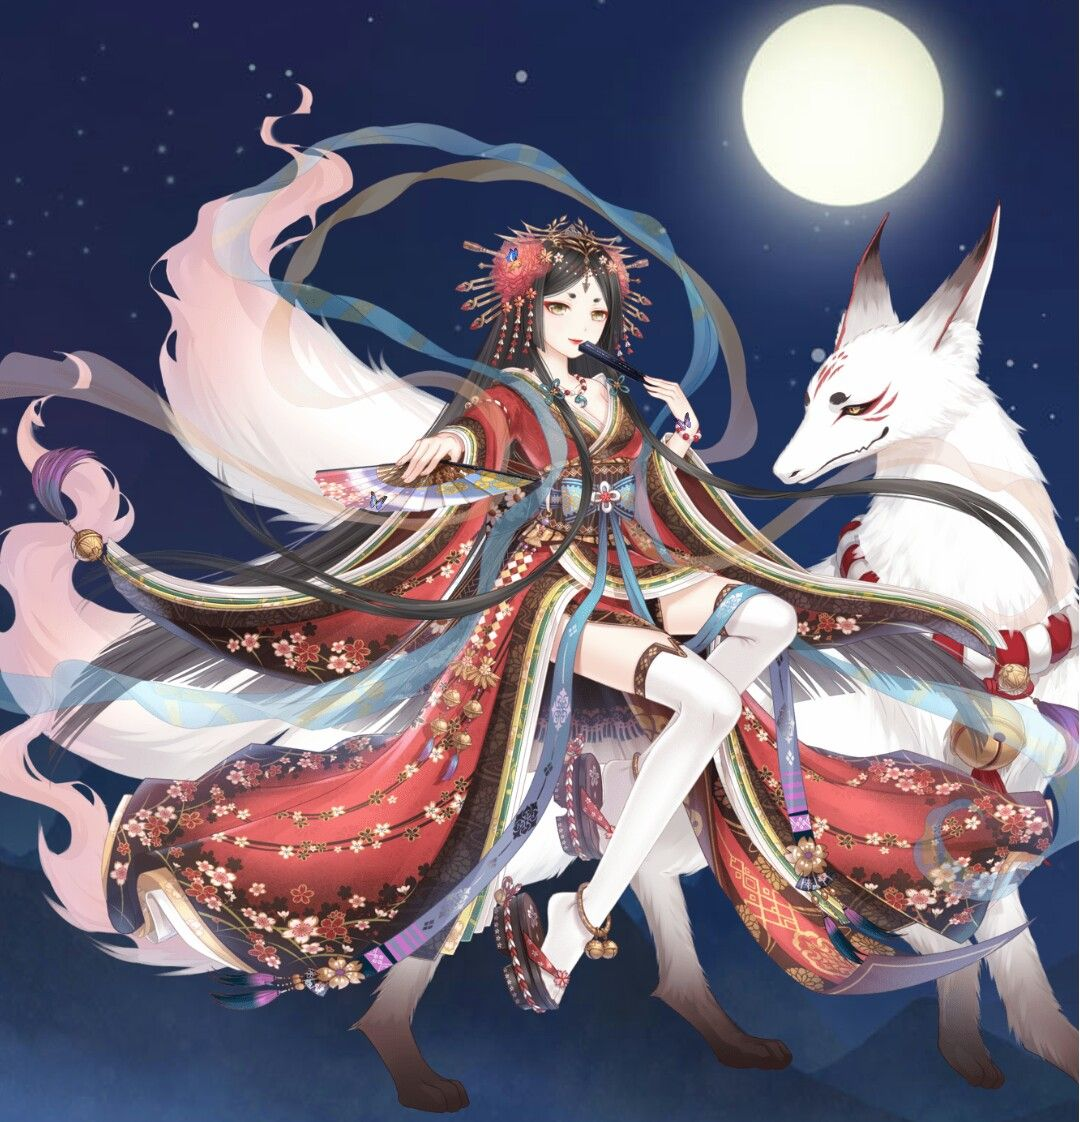 The kitsune set reminds me of Puccini's Madame Butterfly